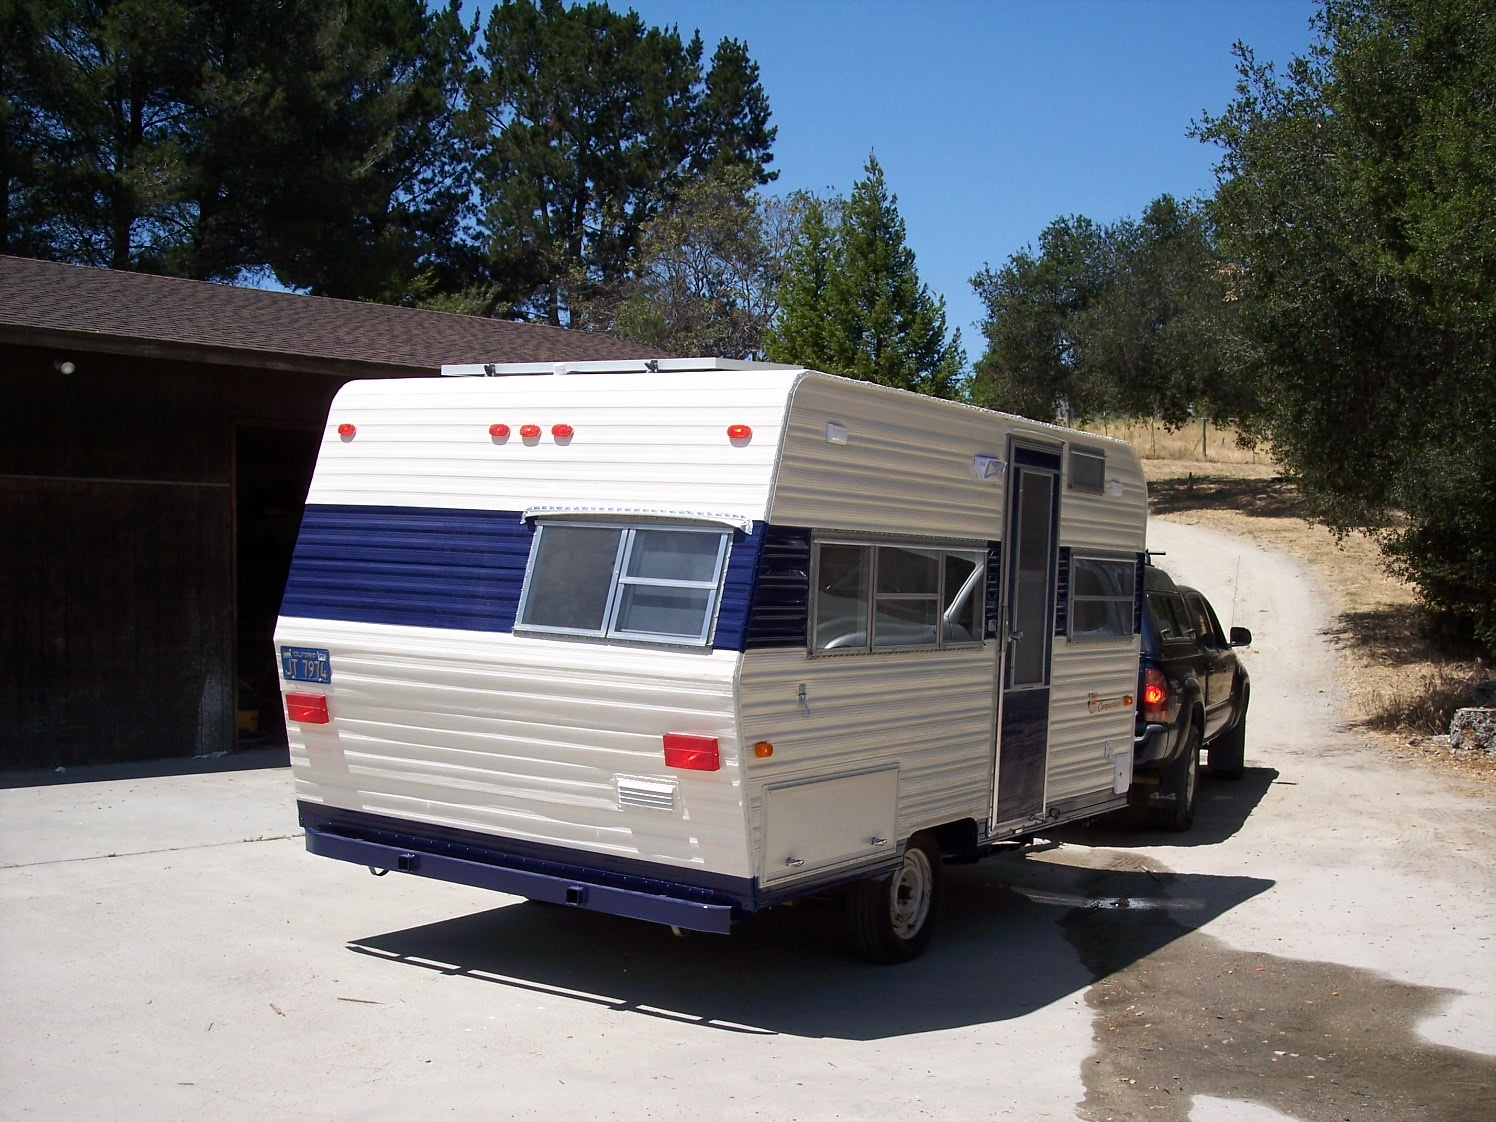 Bullet   Ft Travel Trailer Remodel